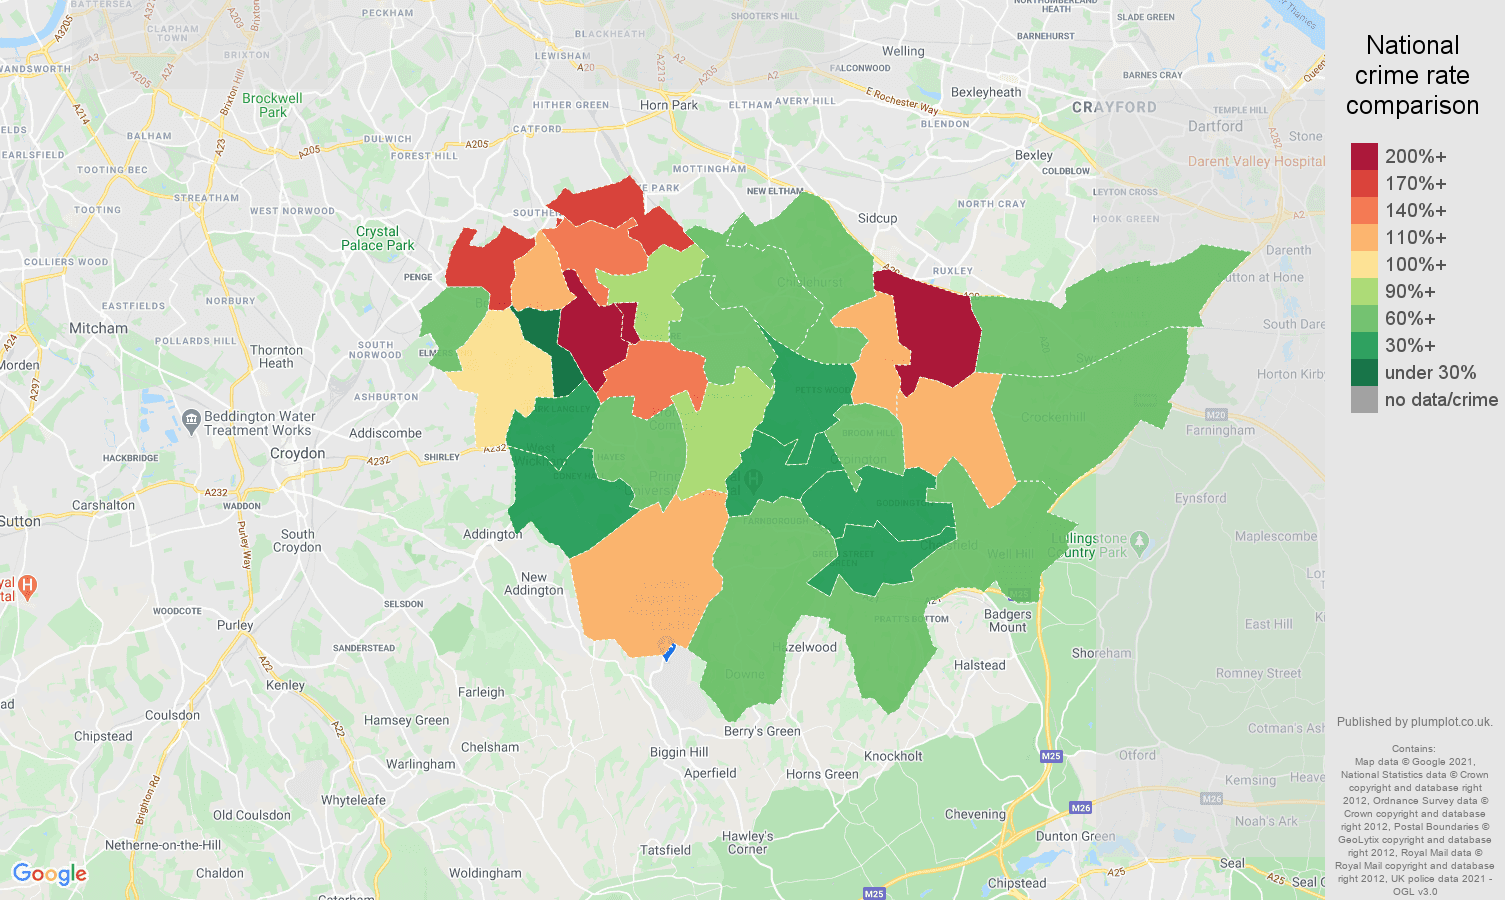 Bromley drugs crime rate comparison map